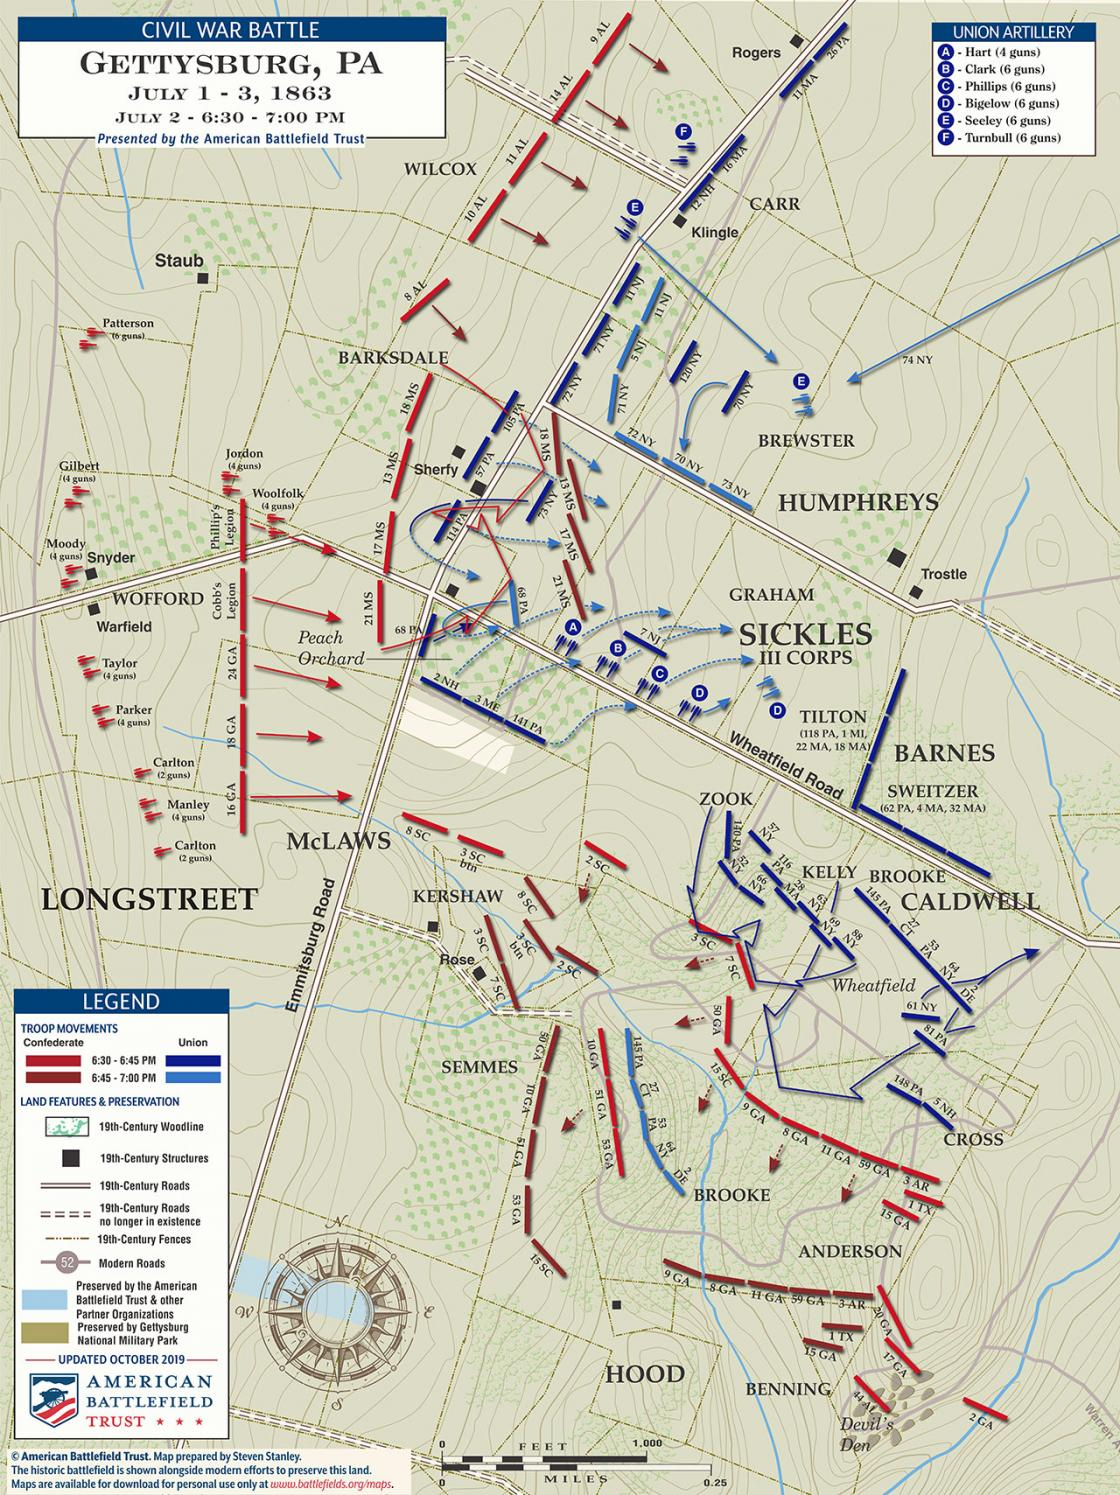 Gettysburg - The Wheatfield and Peach Orchard - July 2, 1863 - 6:30pm to 7pm